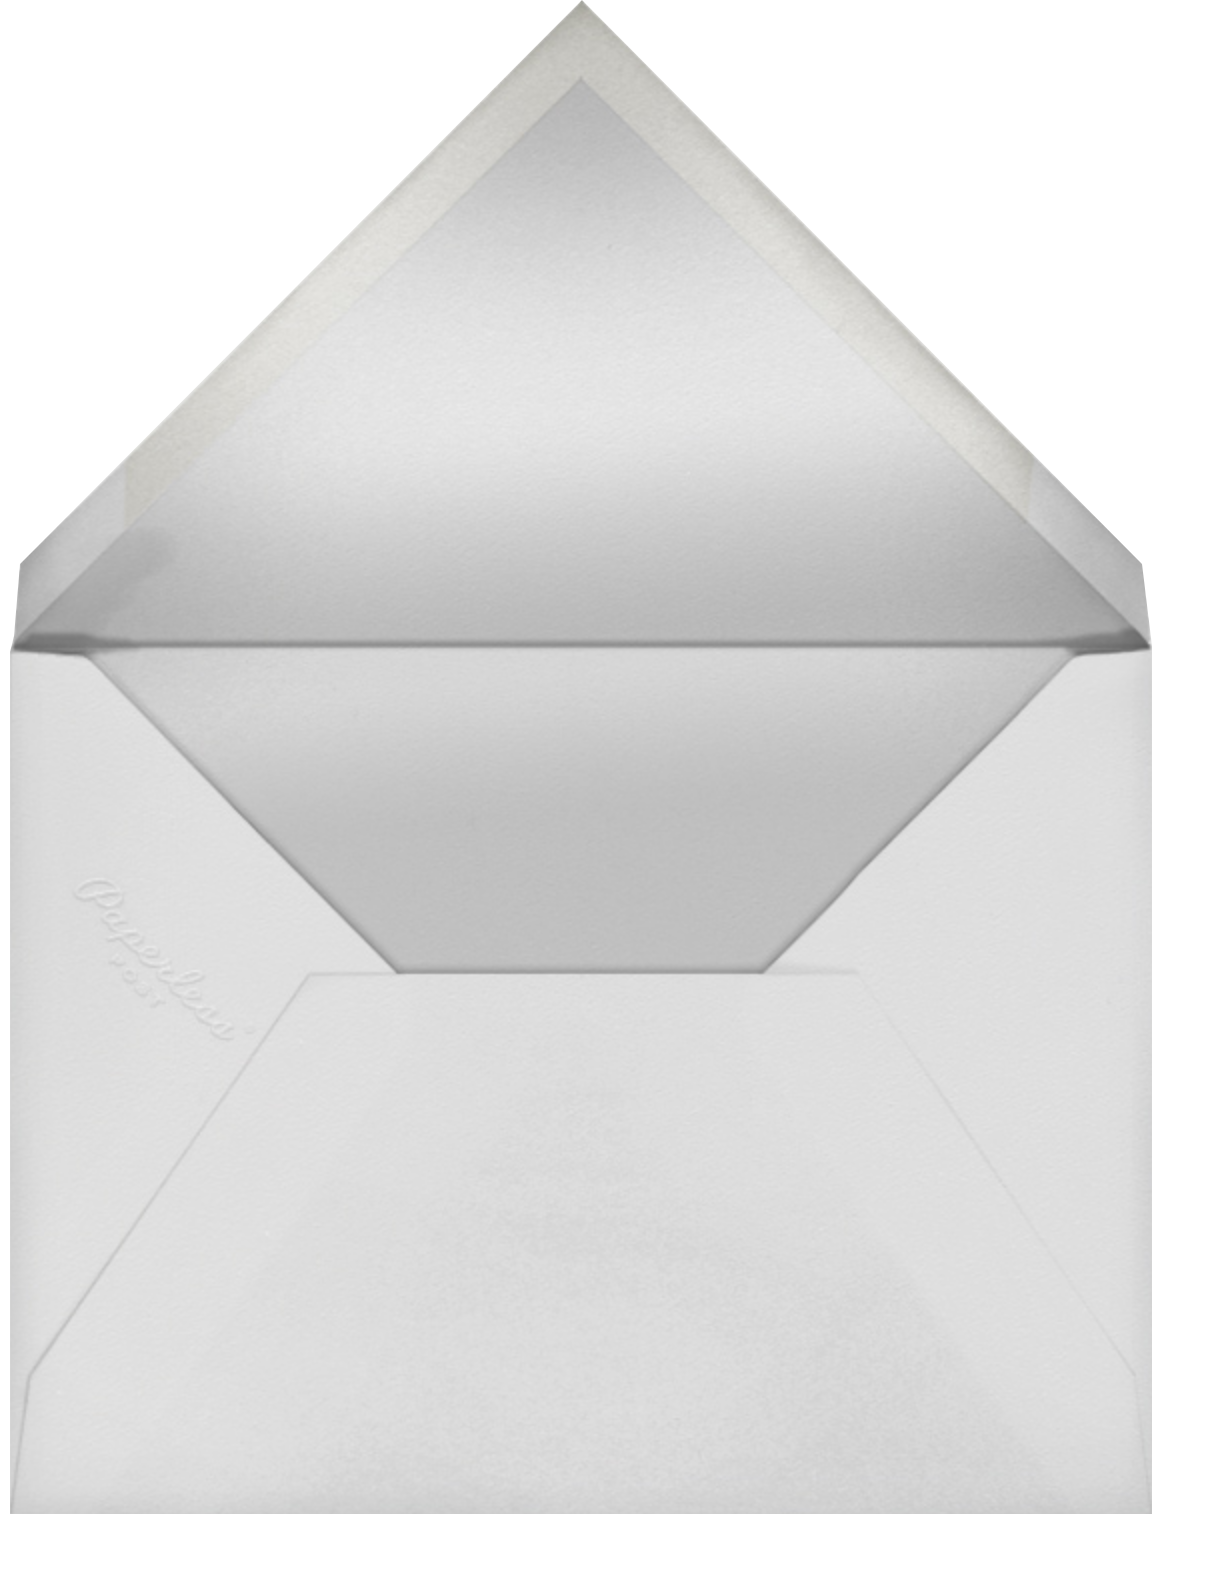 You Make My Heart Race - Paperless Post - Envelope